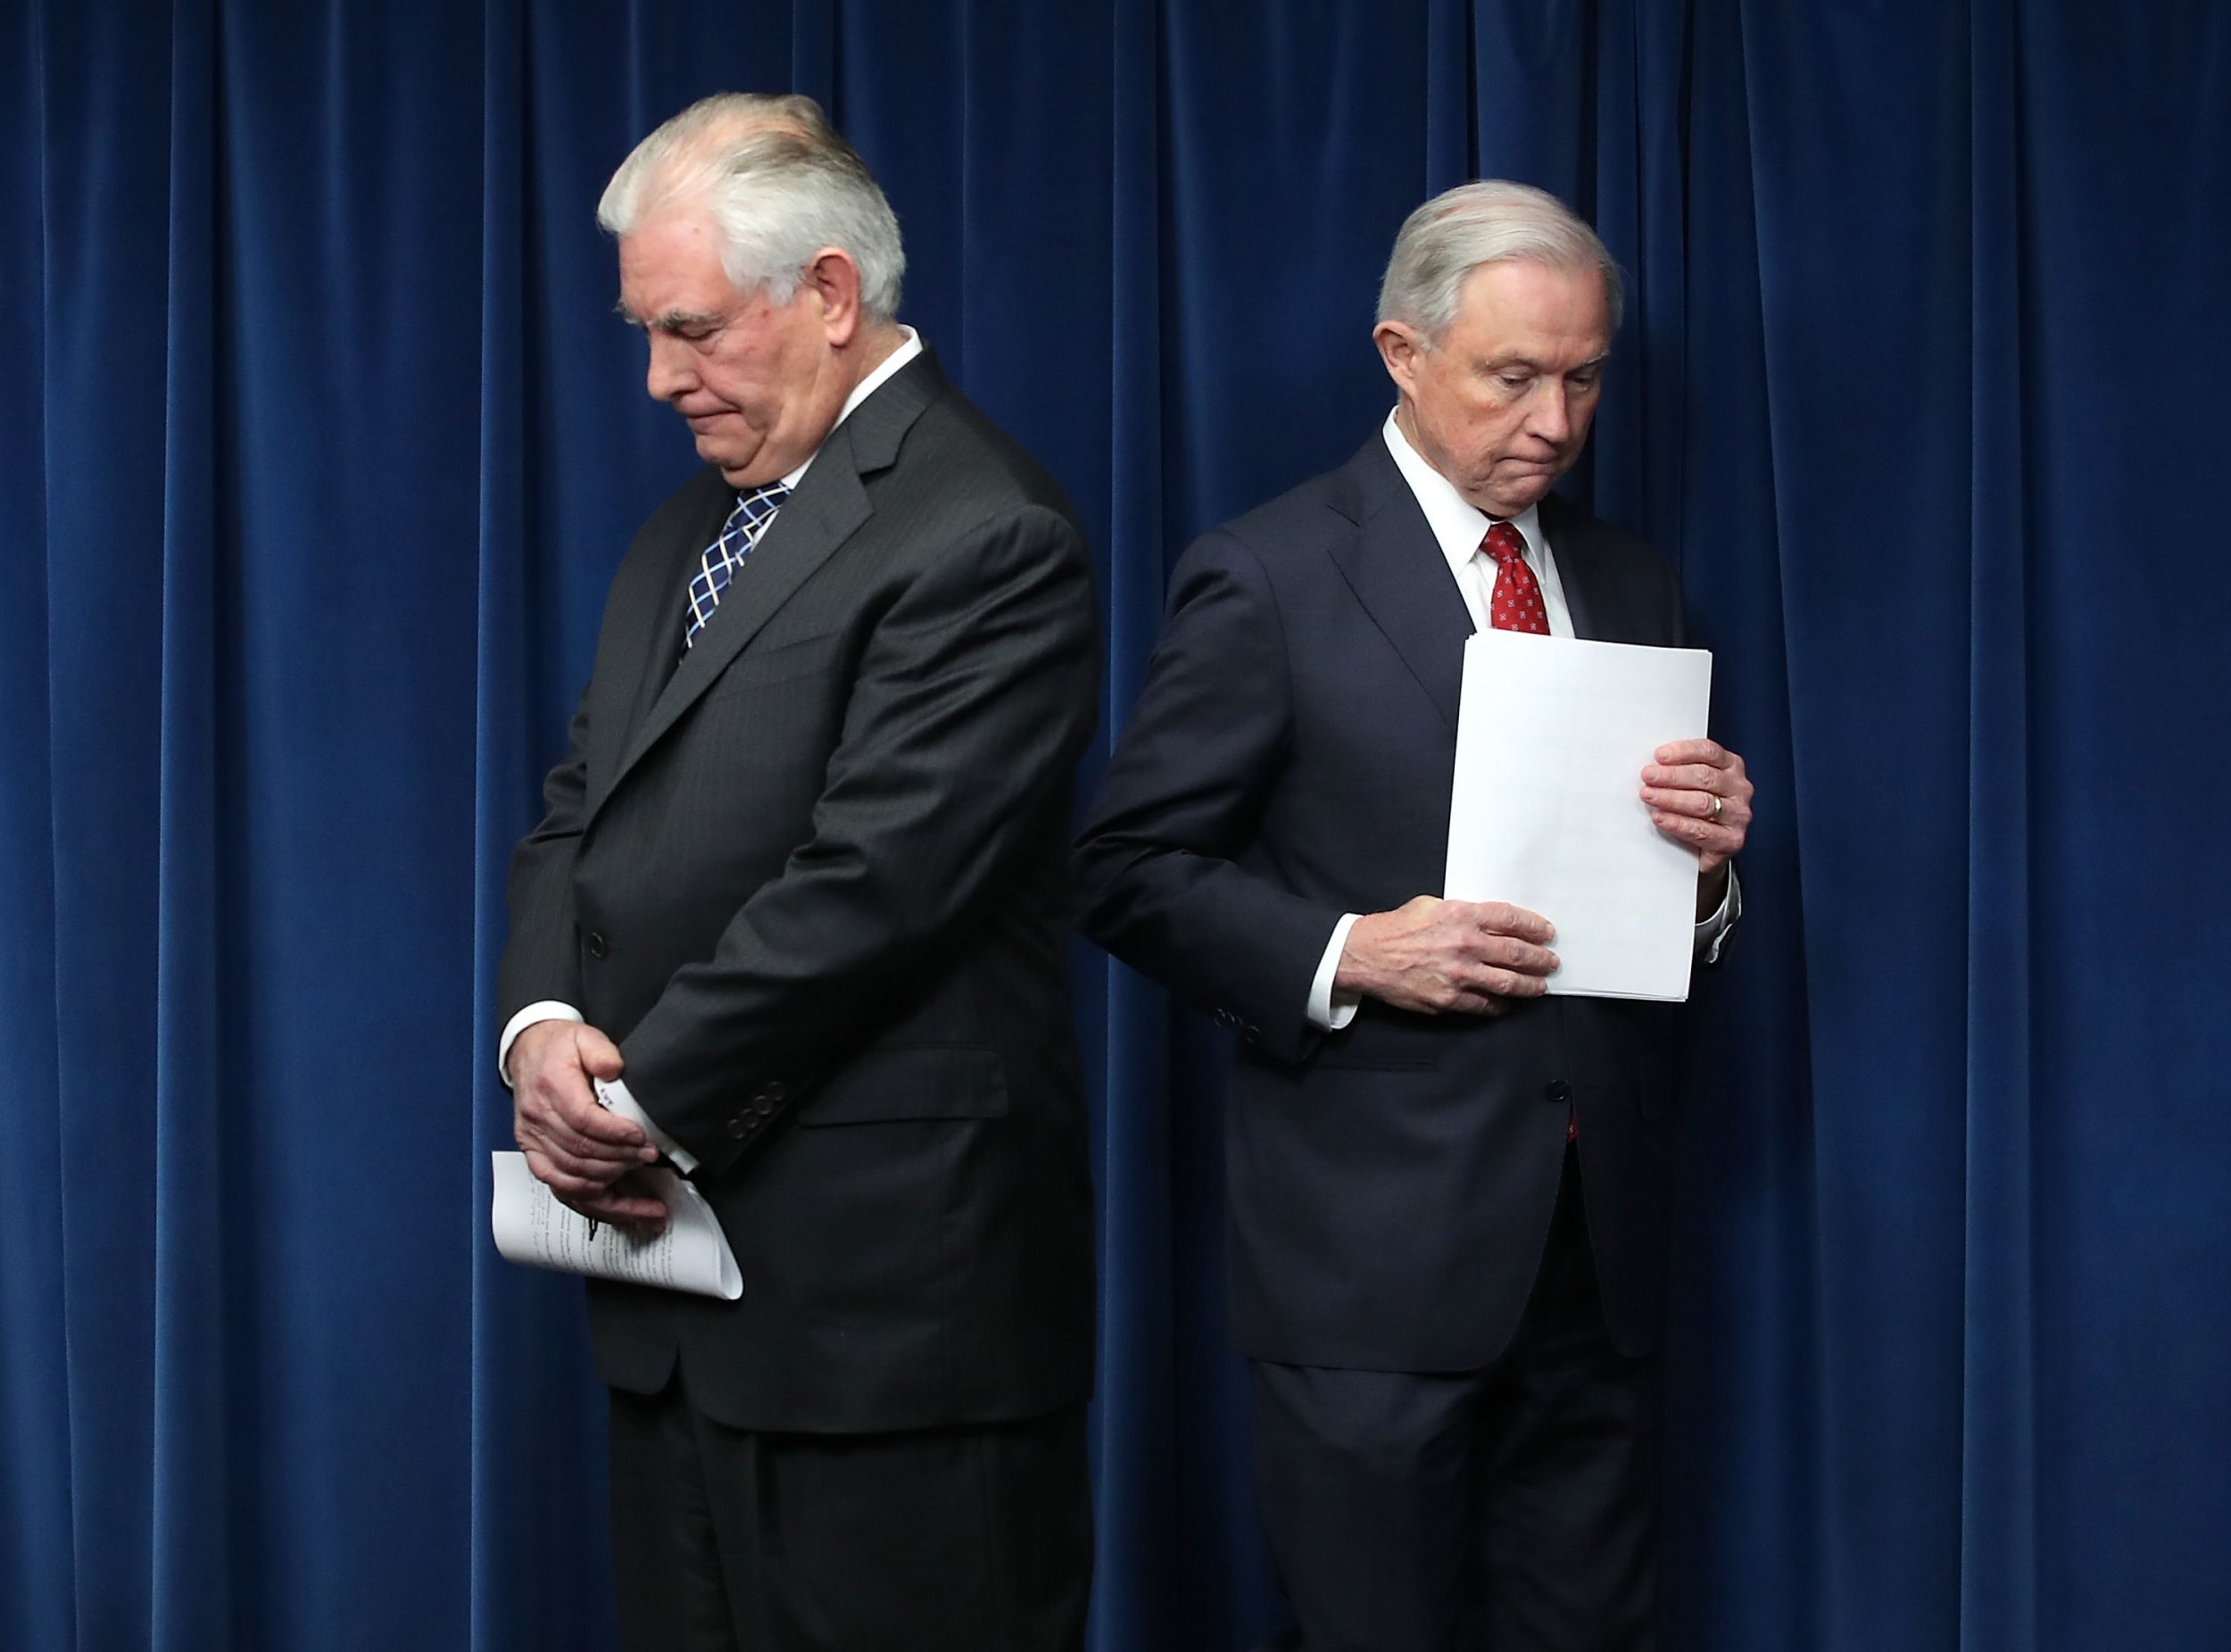 Rex Tillerson, Jeff Sessions